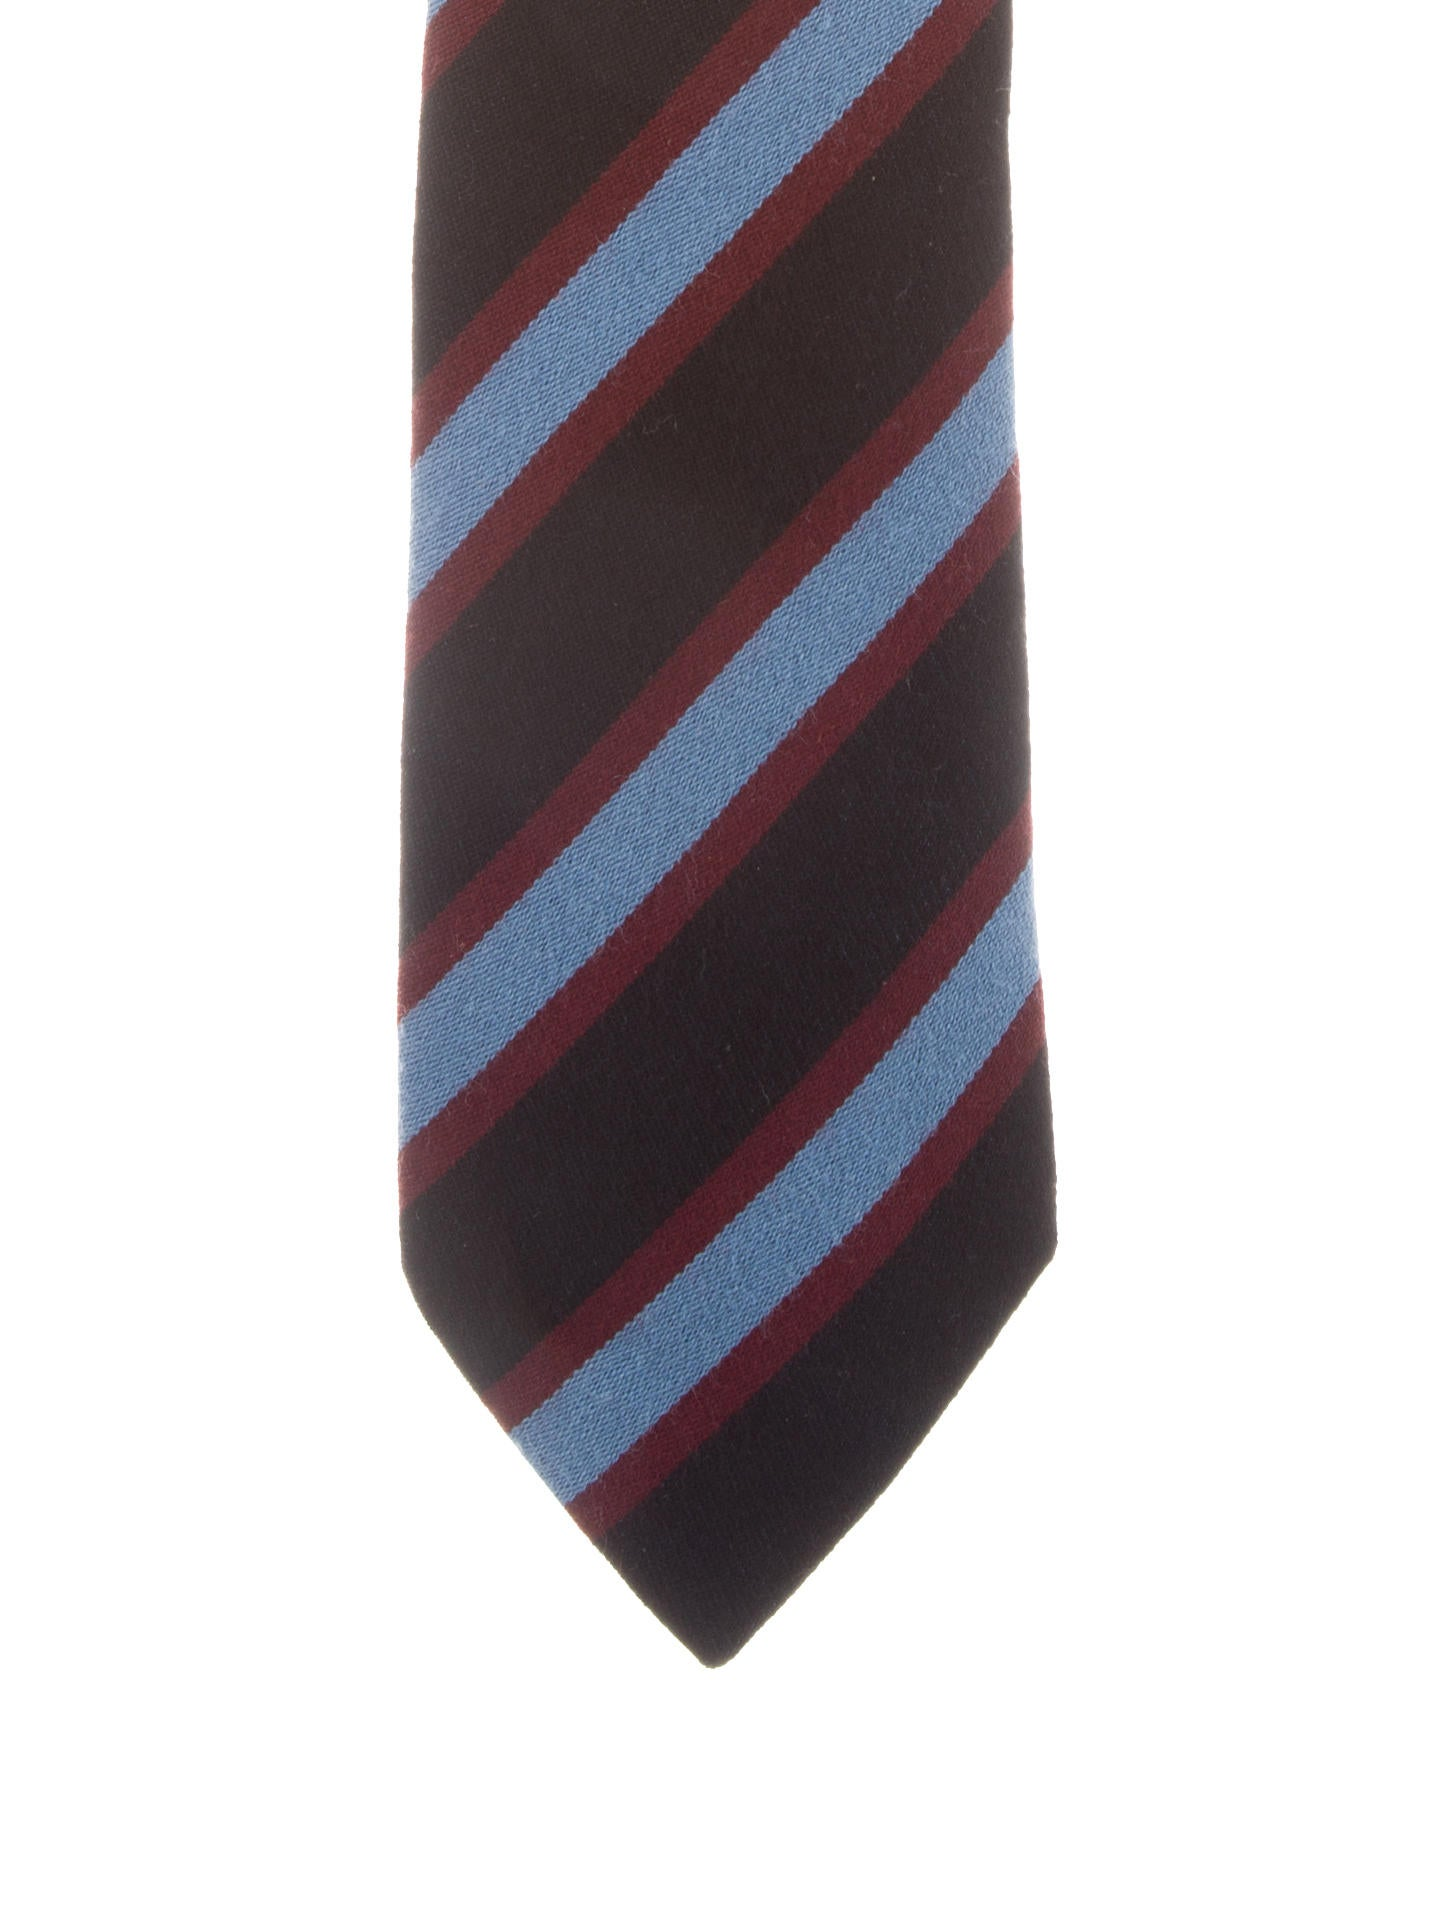 a05fd67aa172 Hermès Striped Wool Tie - Suiting Accessories - HER186107 | The RealReal